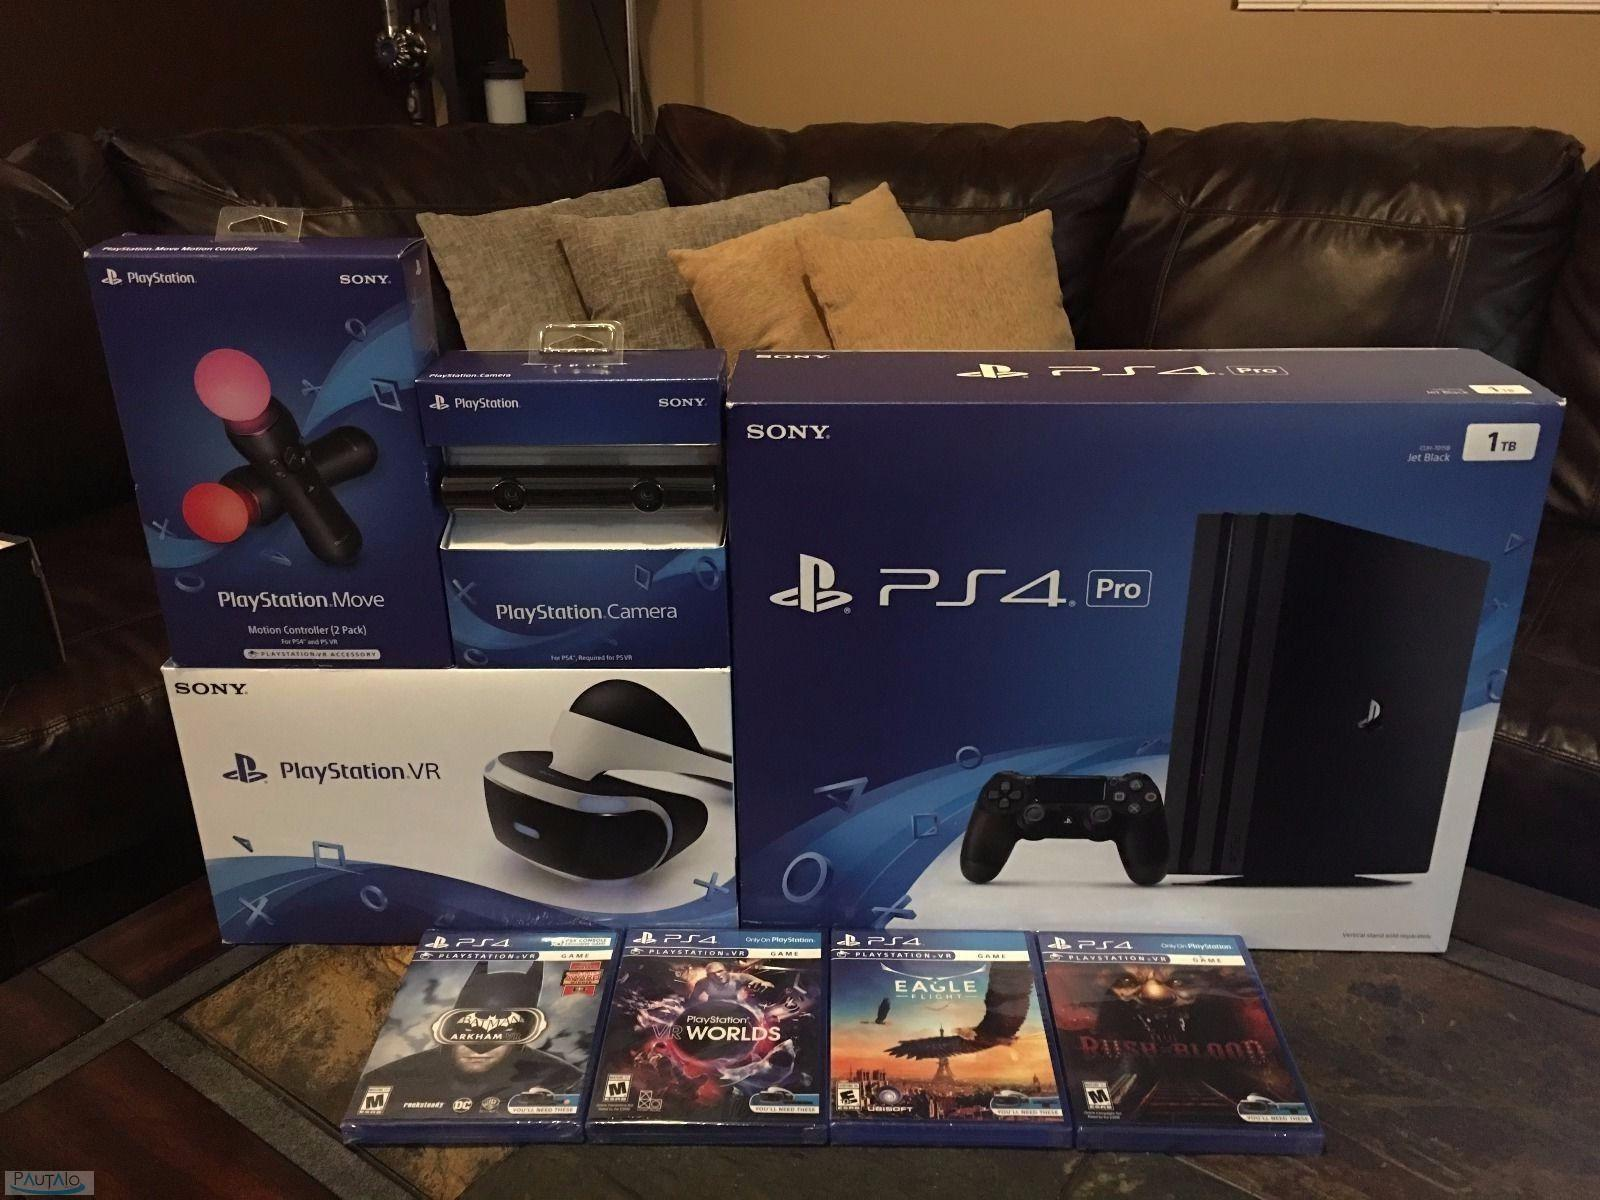 Vendo Libro Electronico Sony Vendo Sony Ps4 Pro 1tb Playstation Vr Con 7 Juegos 150